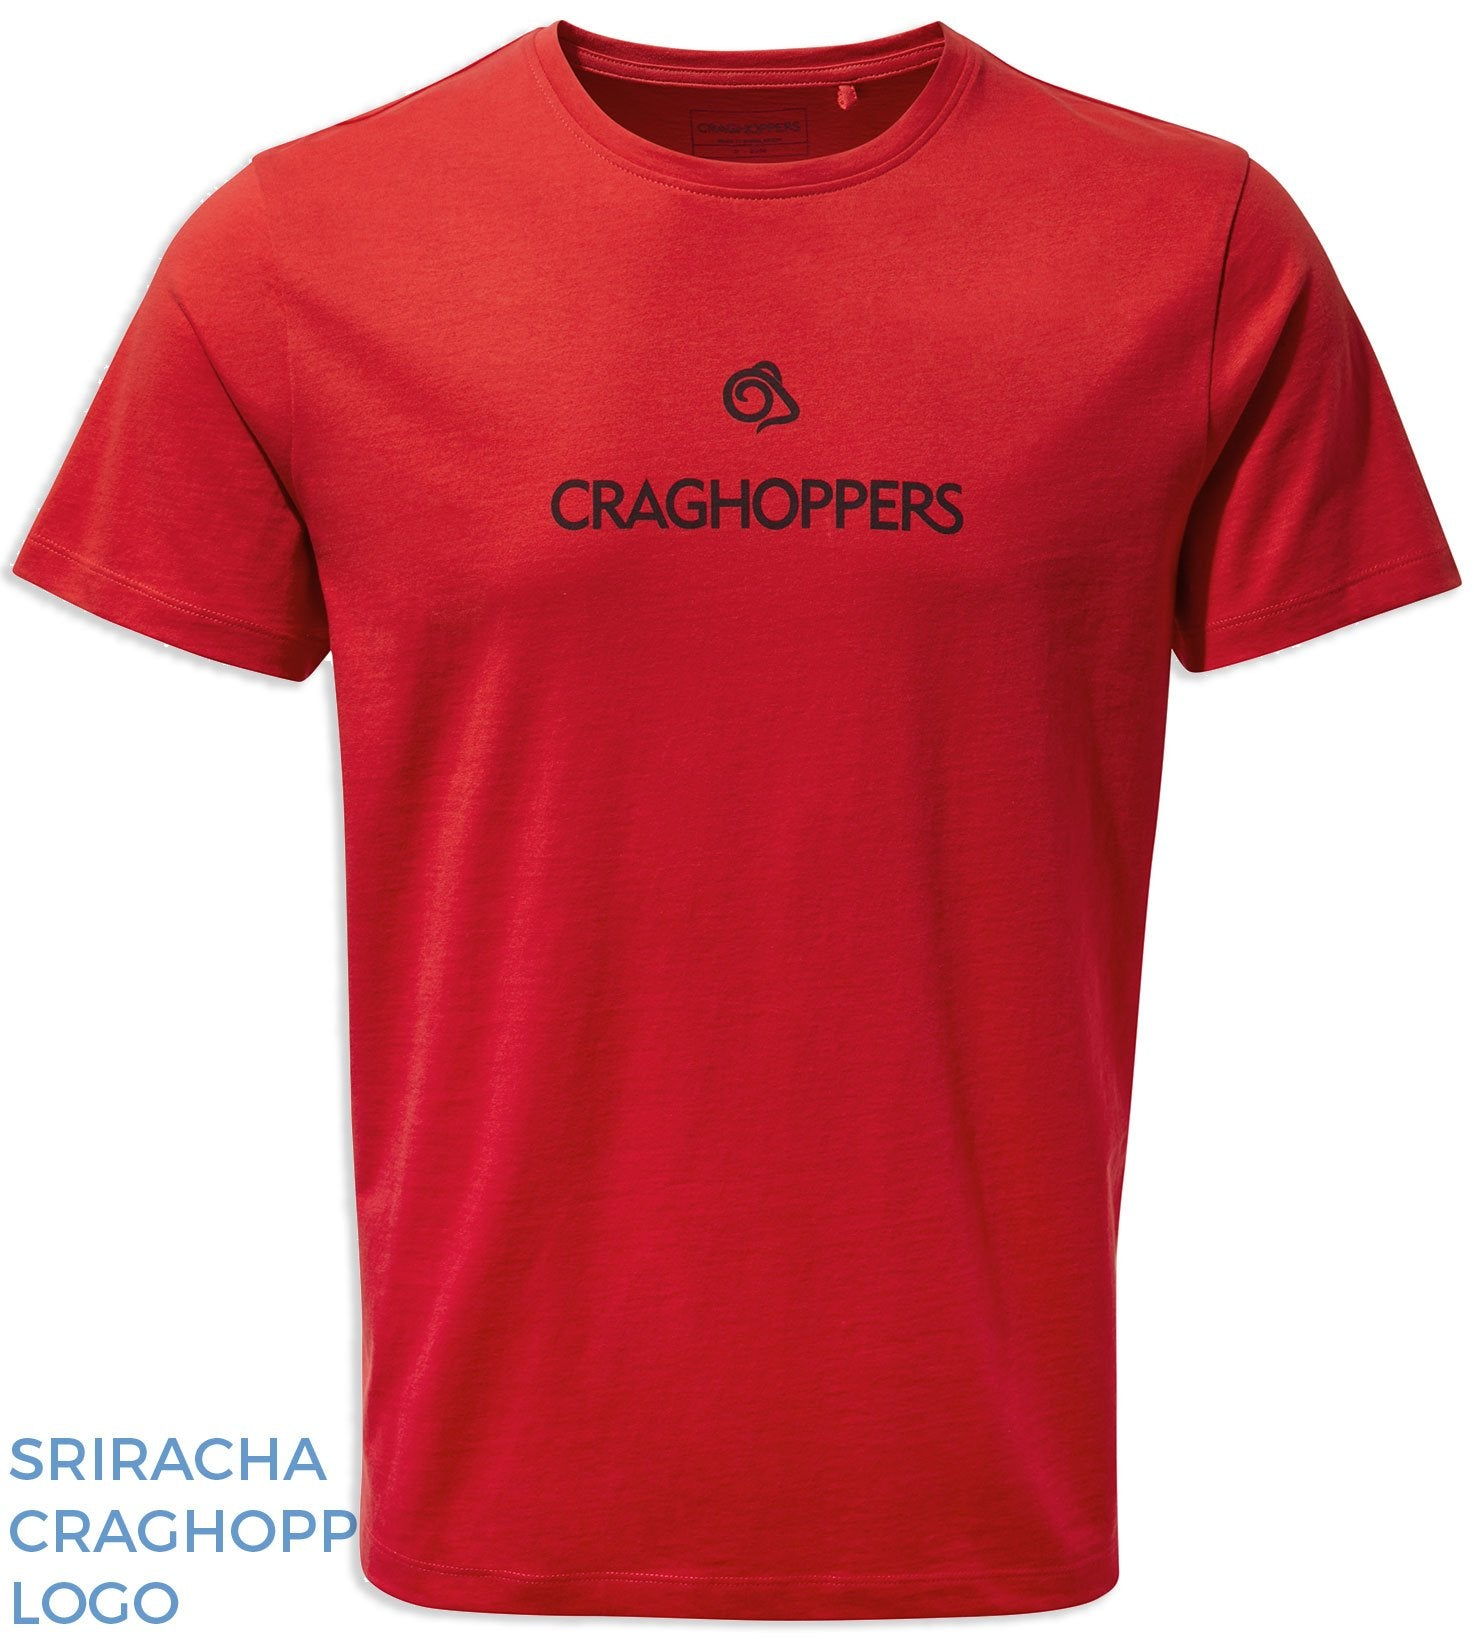 Sriracha REd Craghoppers Nelson T-shirt